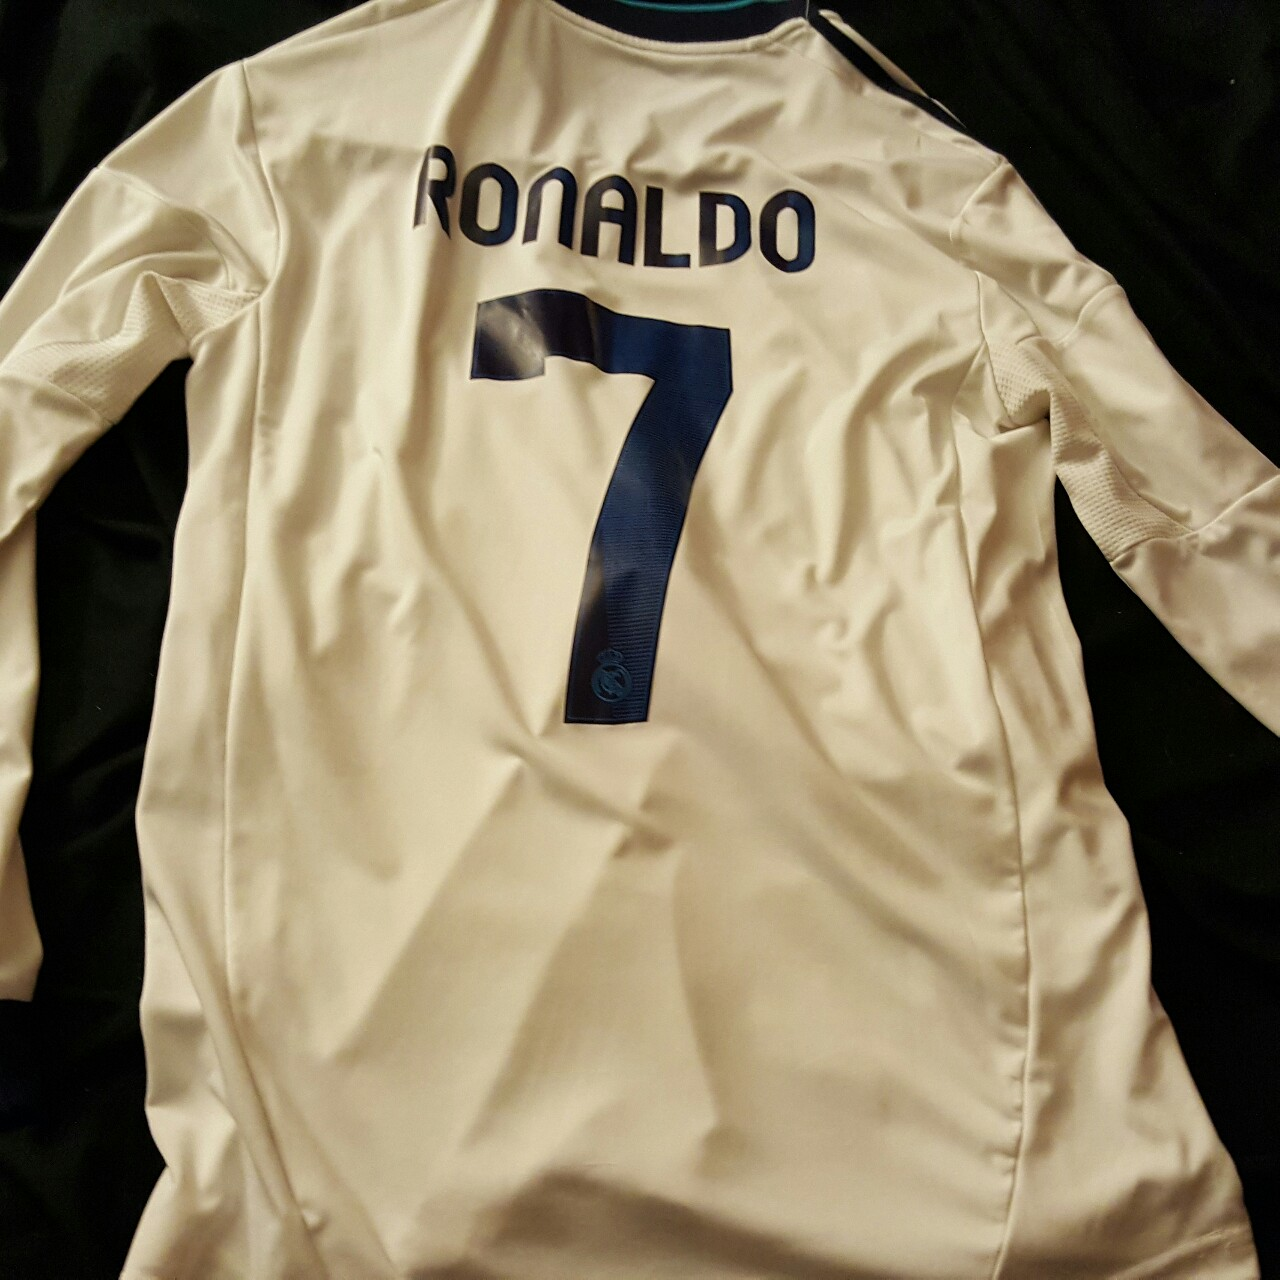 timeless design e49f2 4e453 Long sleeve cristiano ronaldo jersey only worn for... - Depop